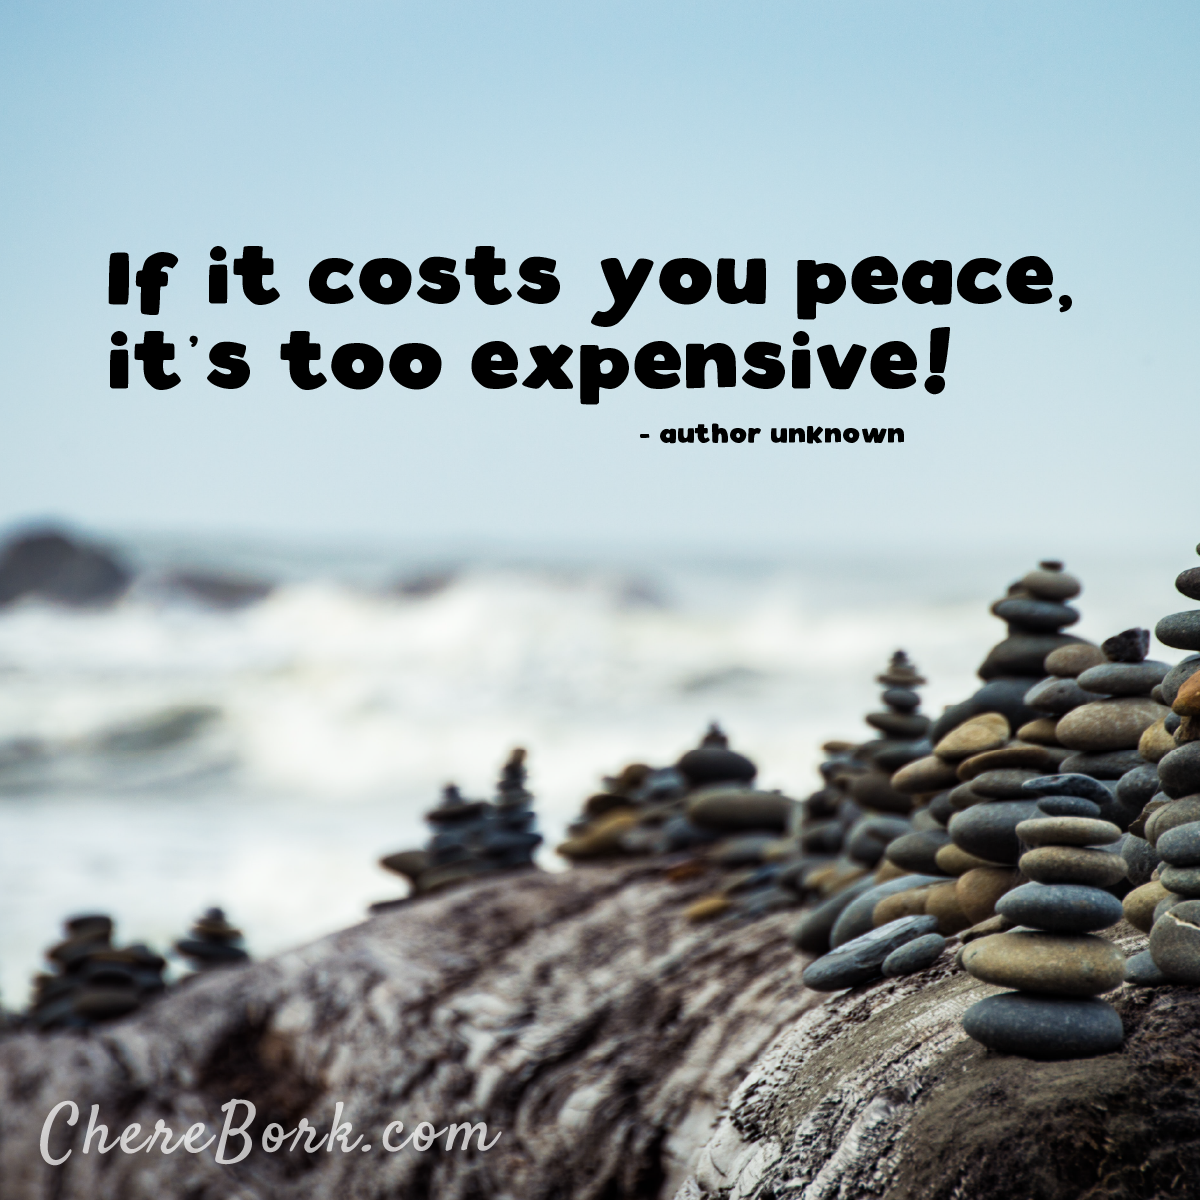 If it costs you peace, it's too expensive! -Author unknown